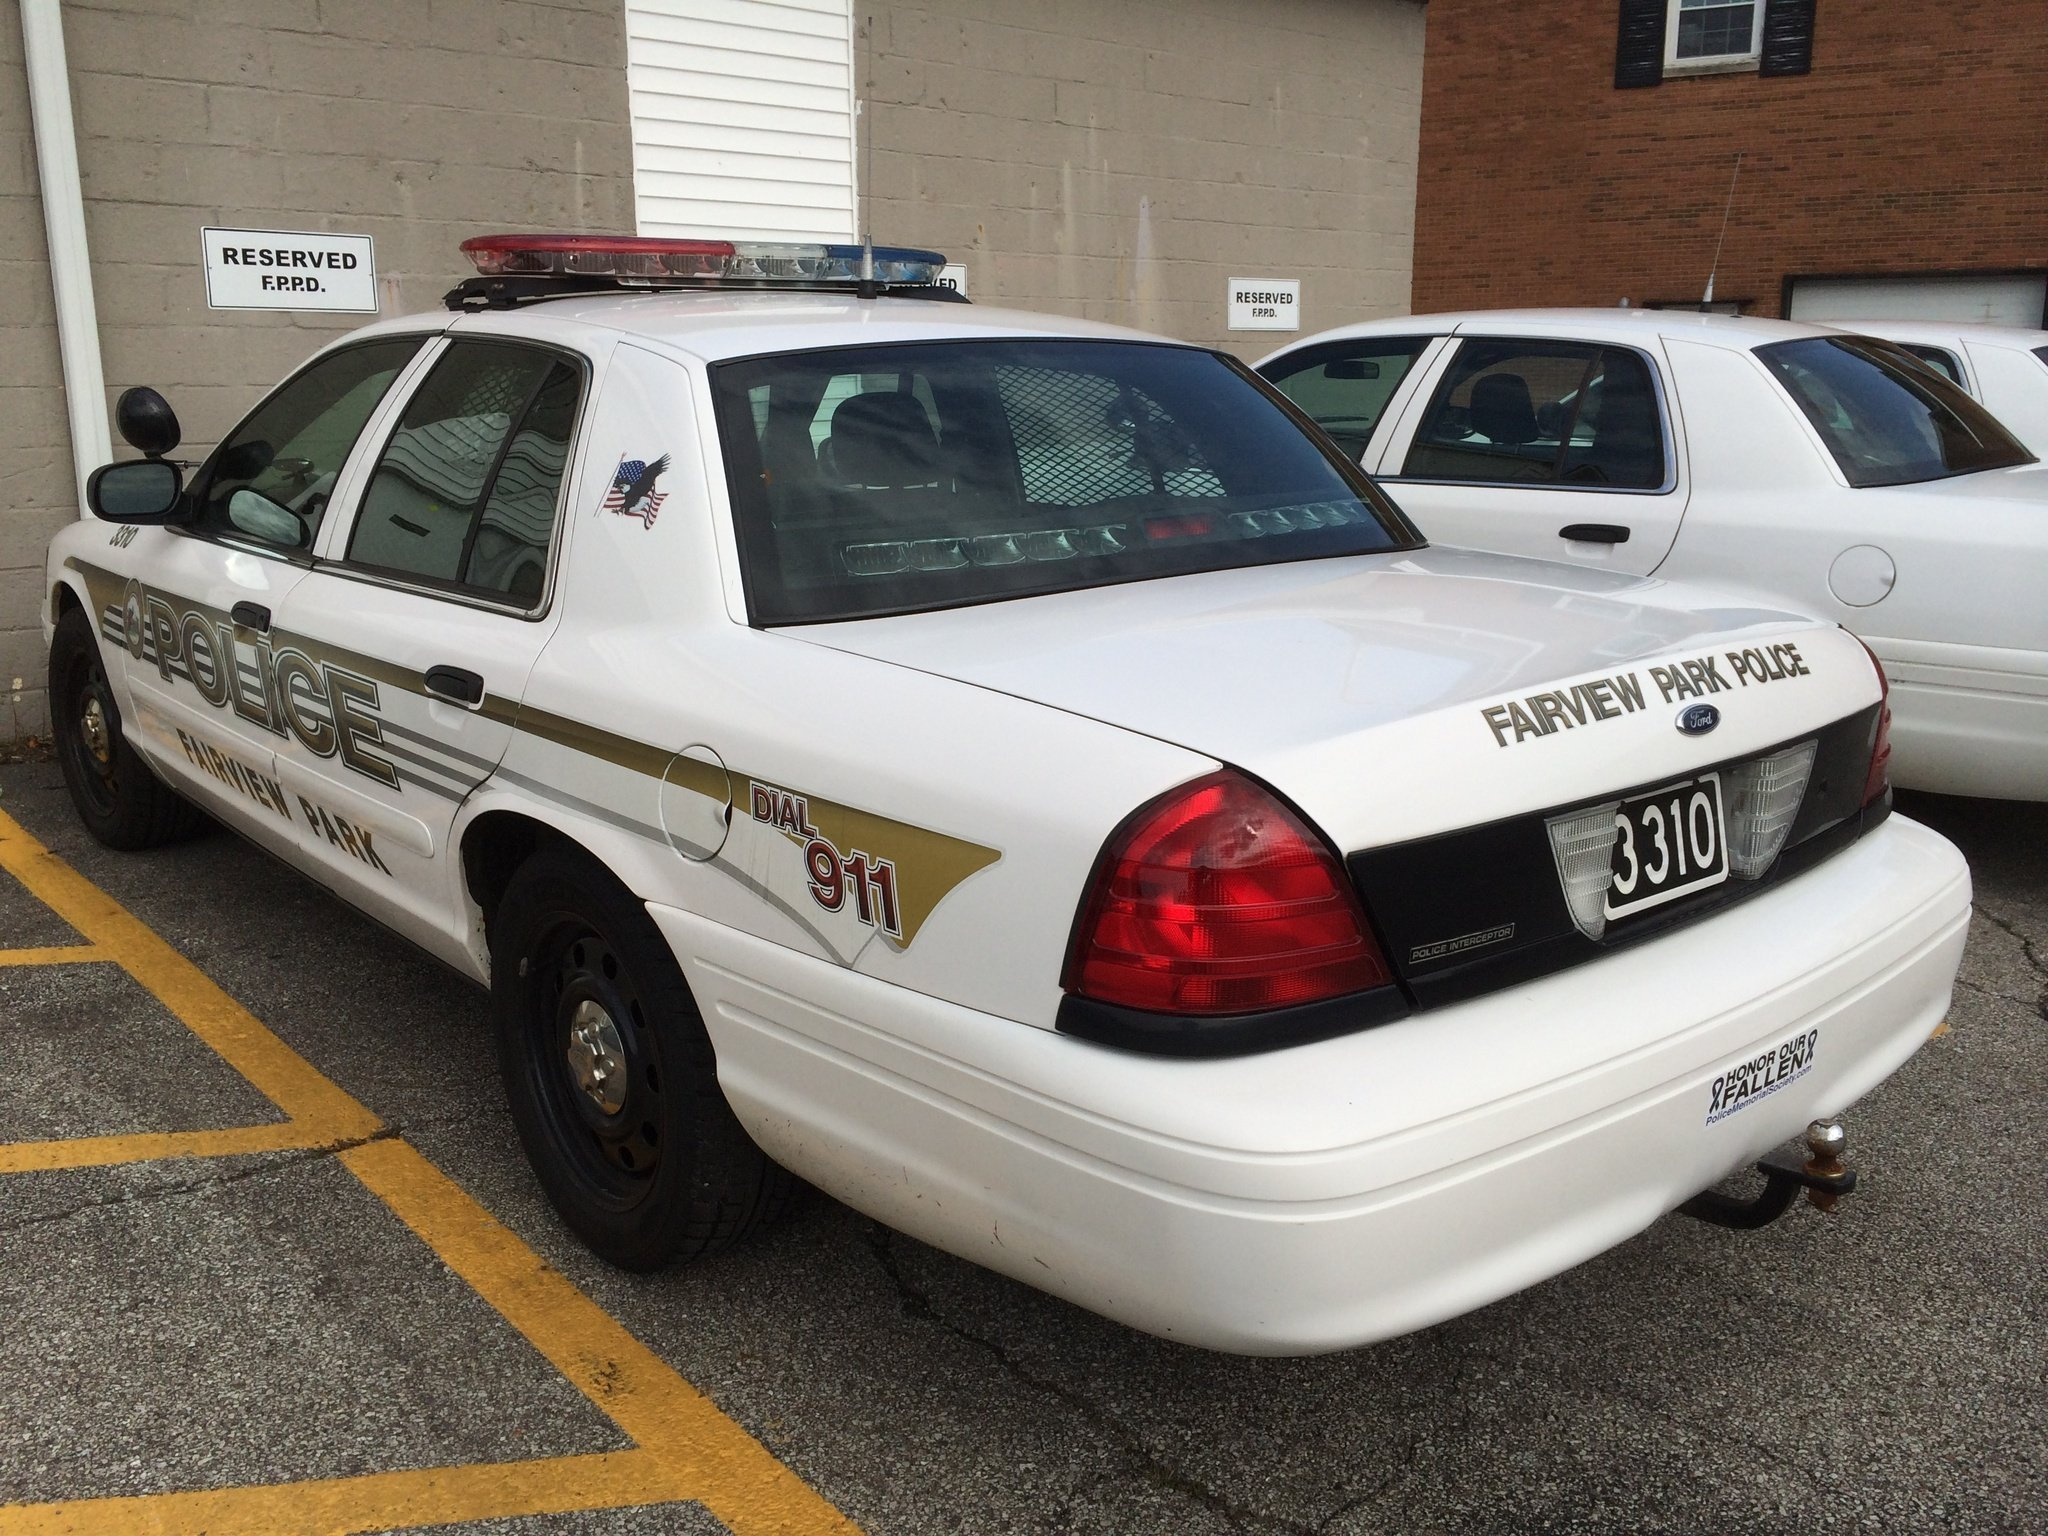 fairview-park-police-car-new-745c541b94b72271